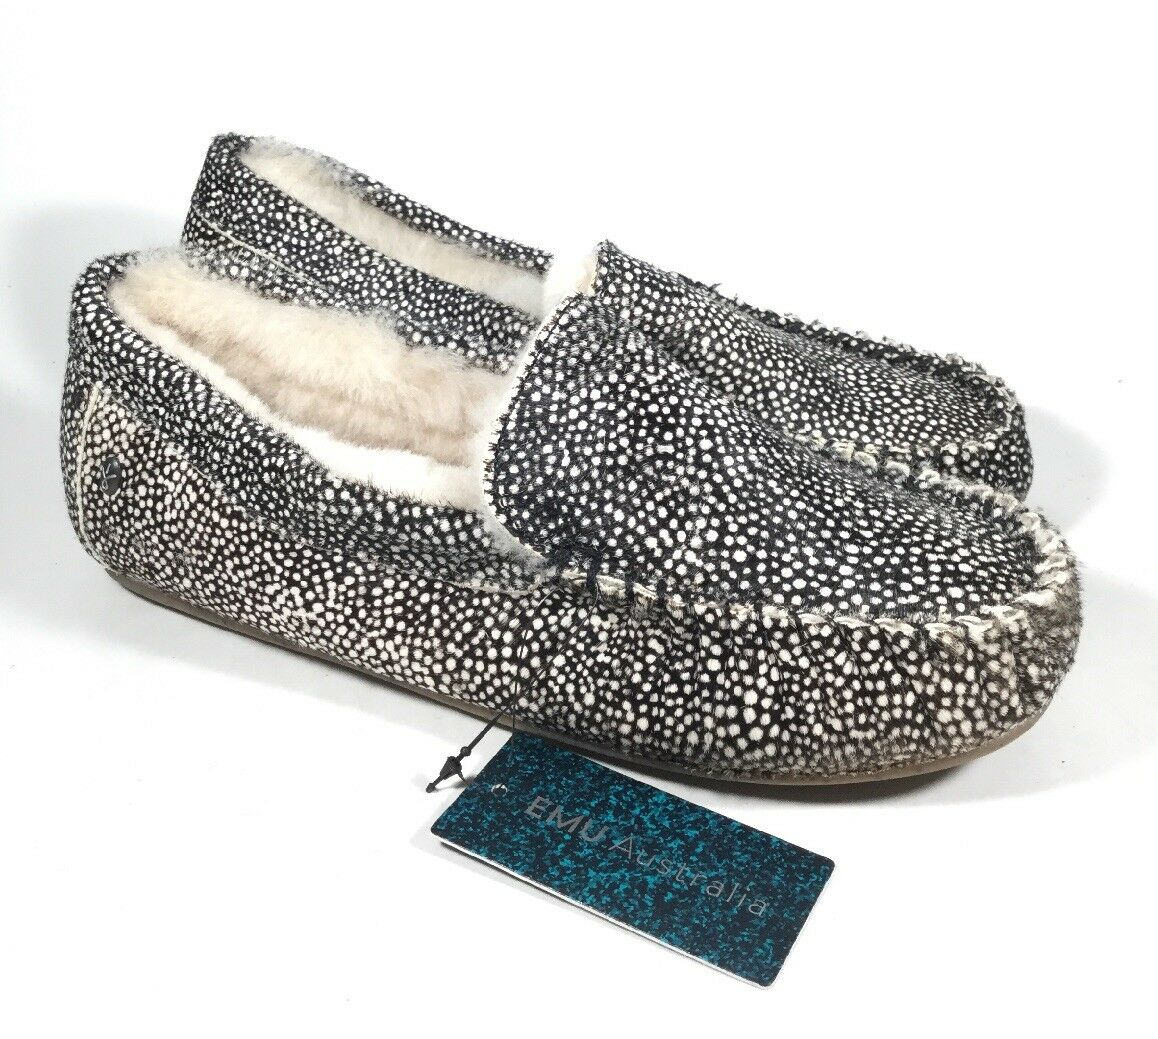 M4357L New Women's EMU Australia Amity Fur White Spot Slipper US 7 M